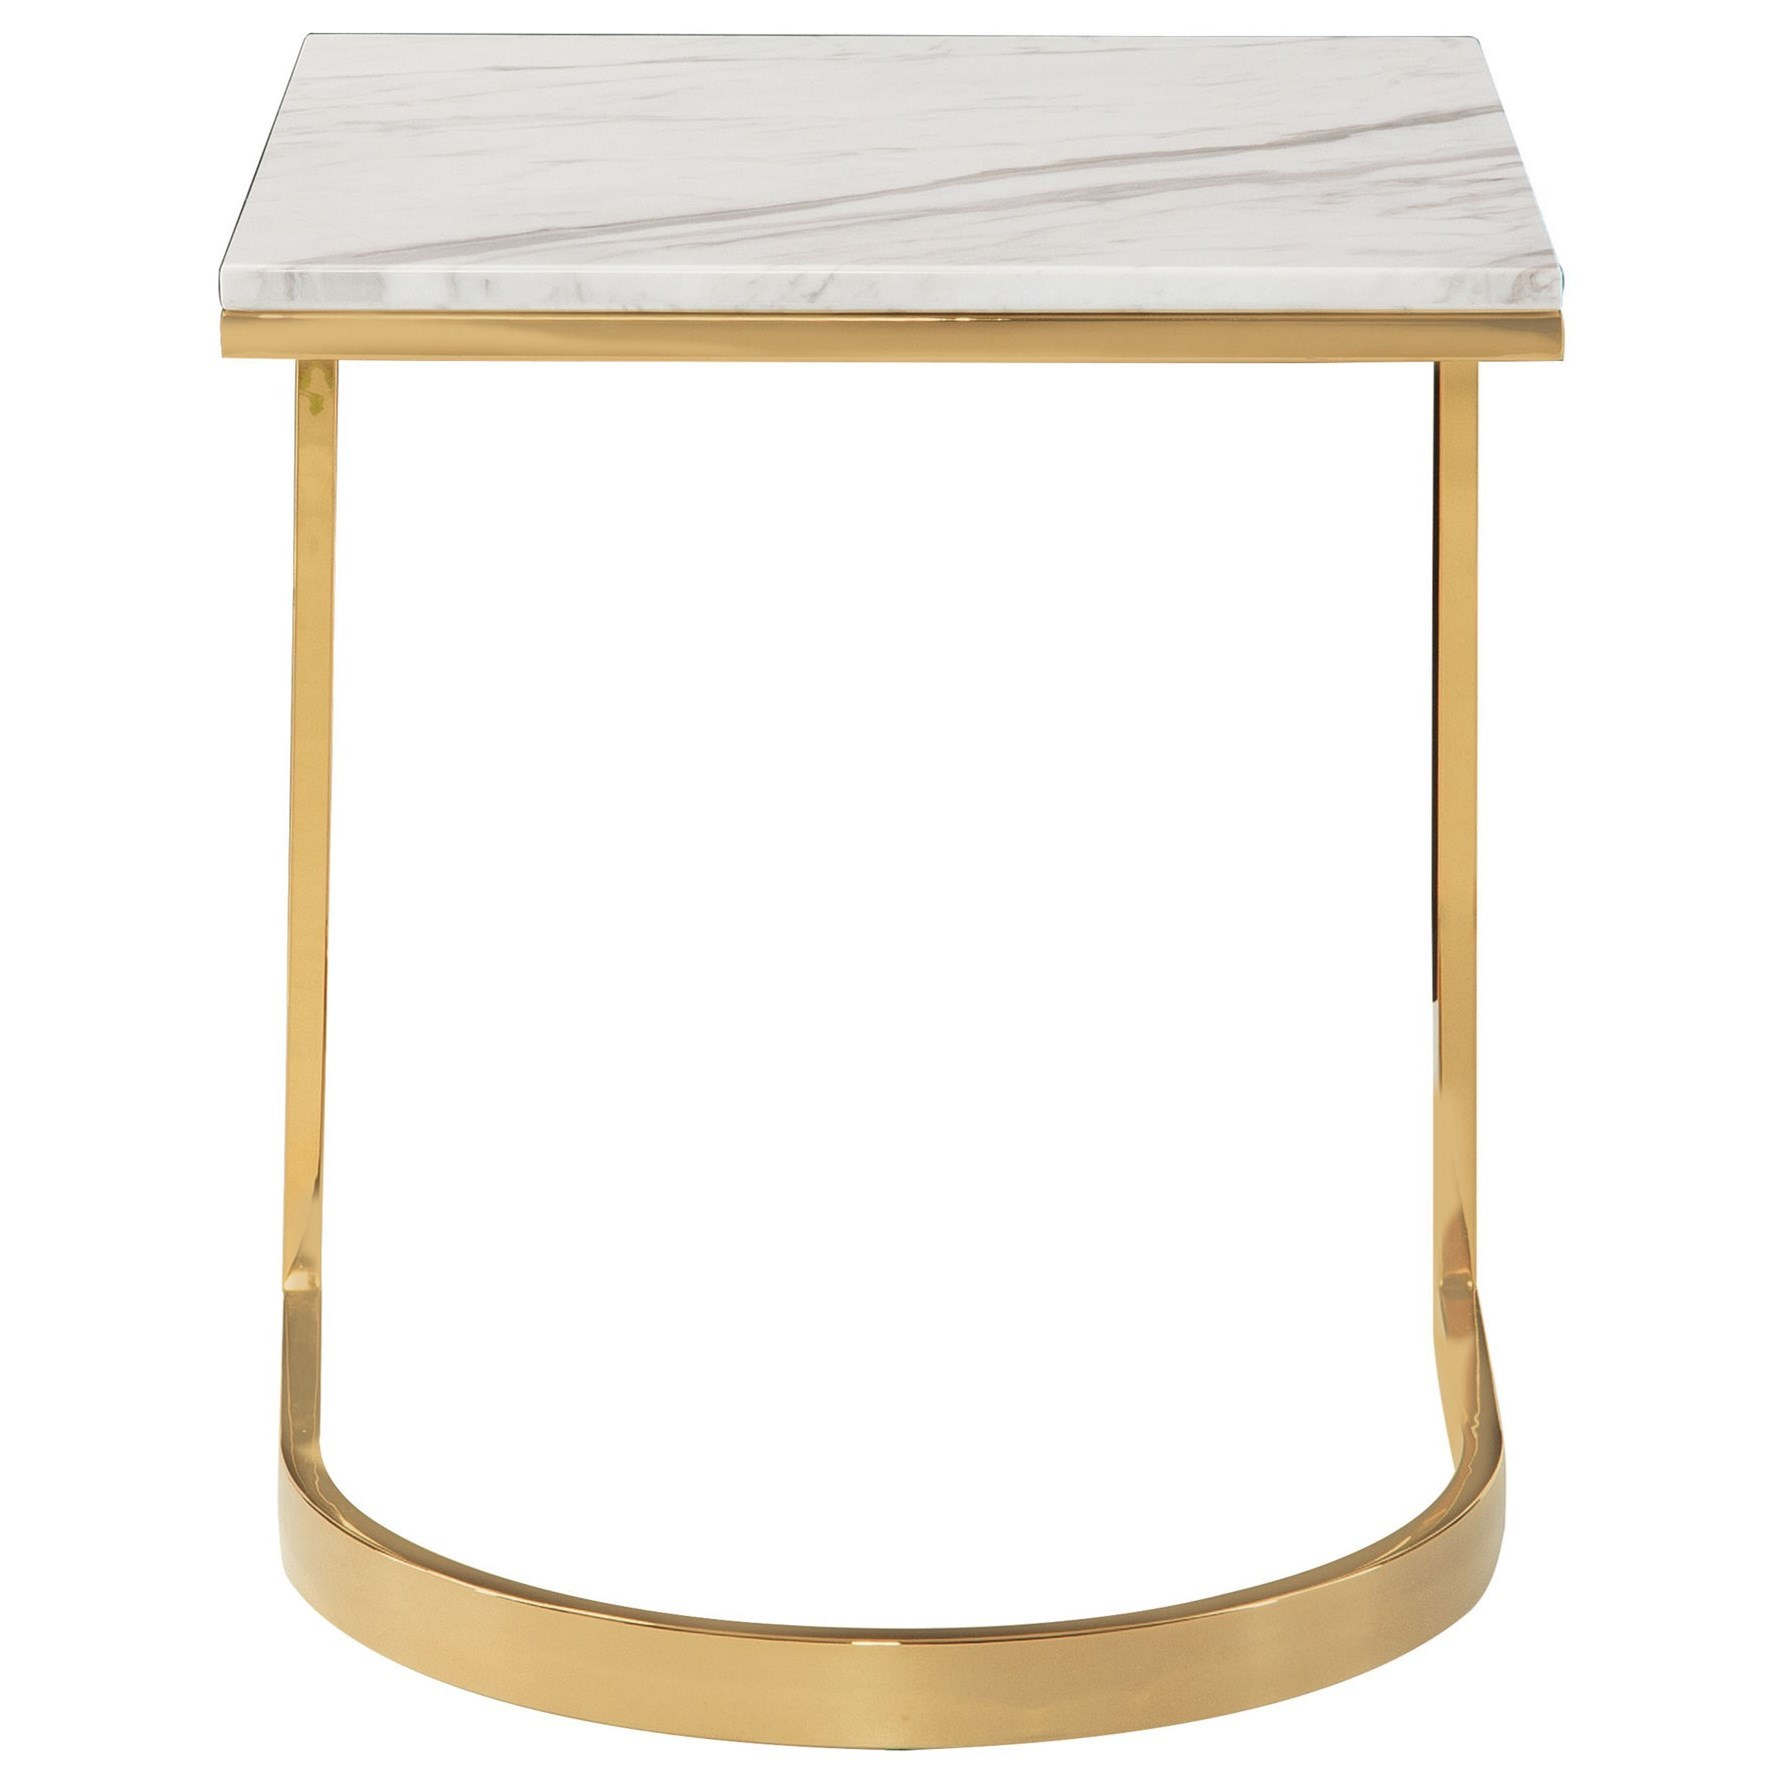 Blanchard End Table by Bernhardt at Stuckey Furniture